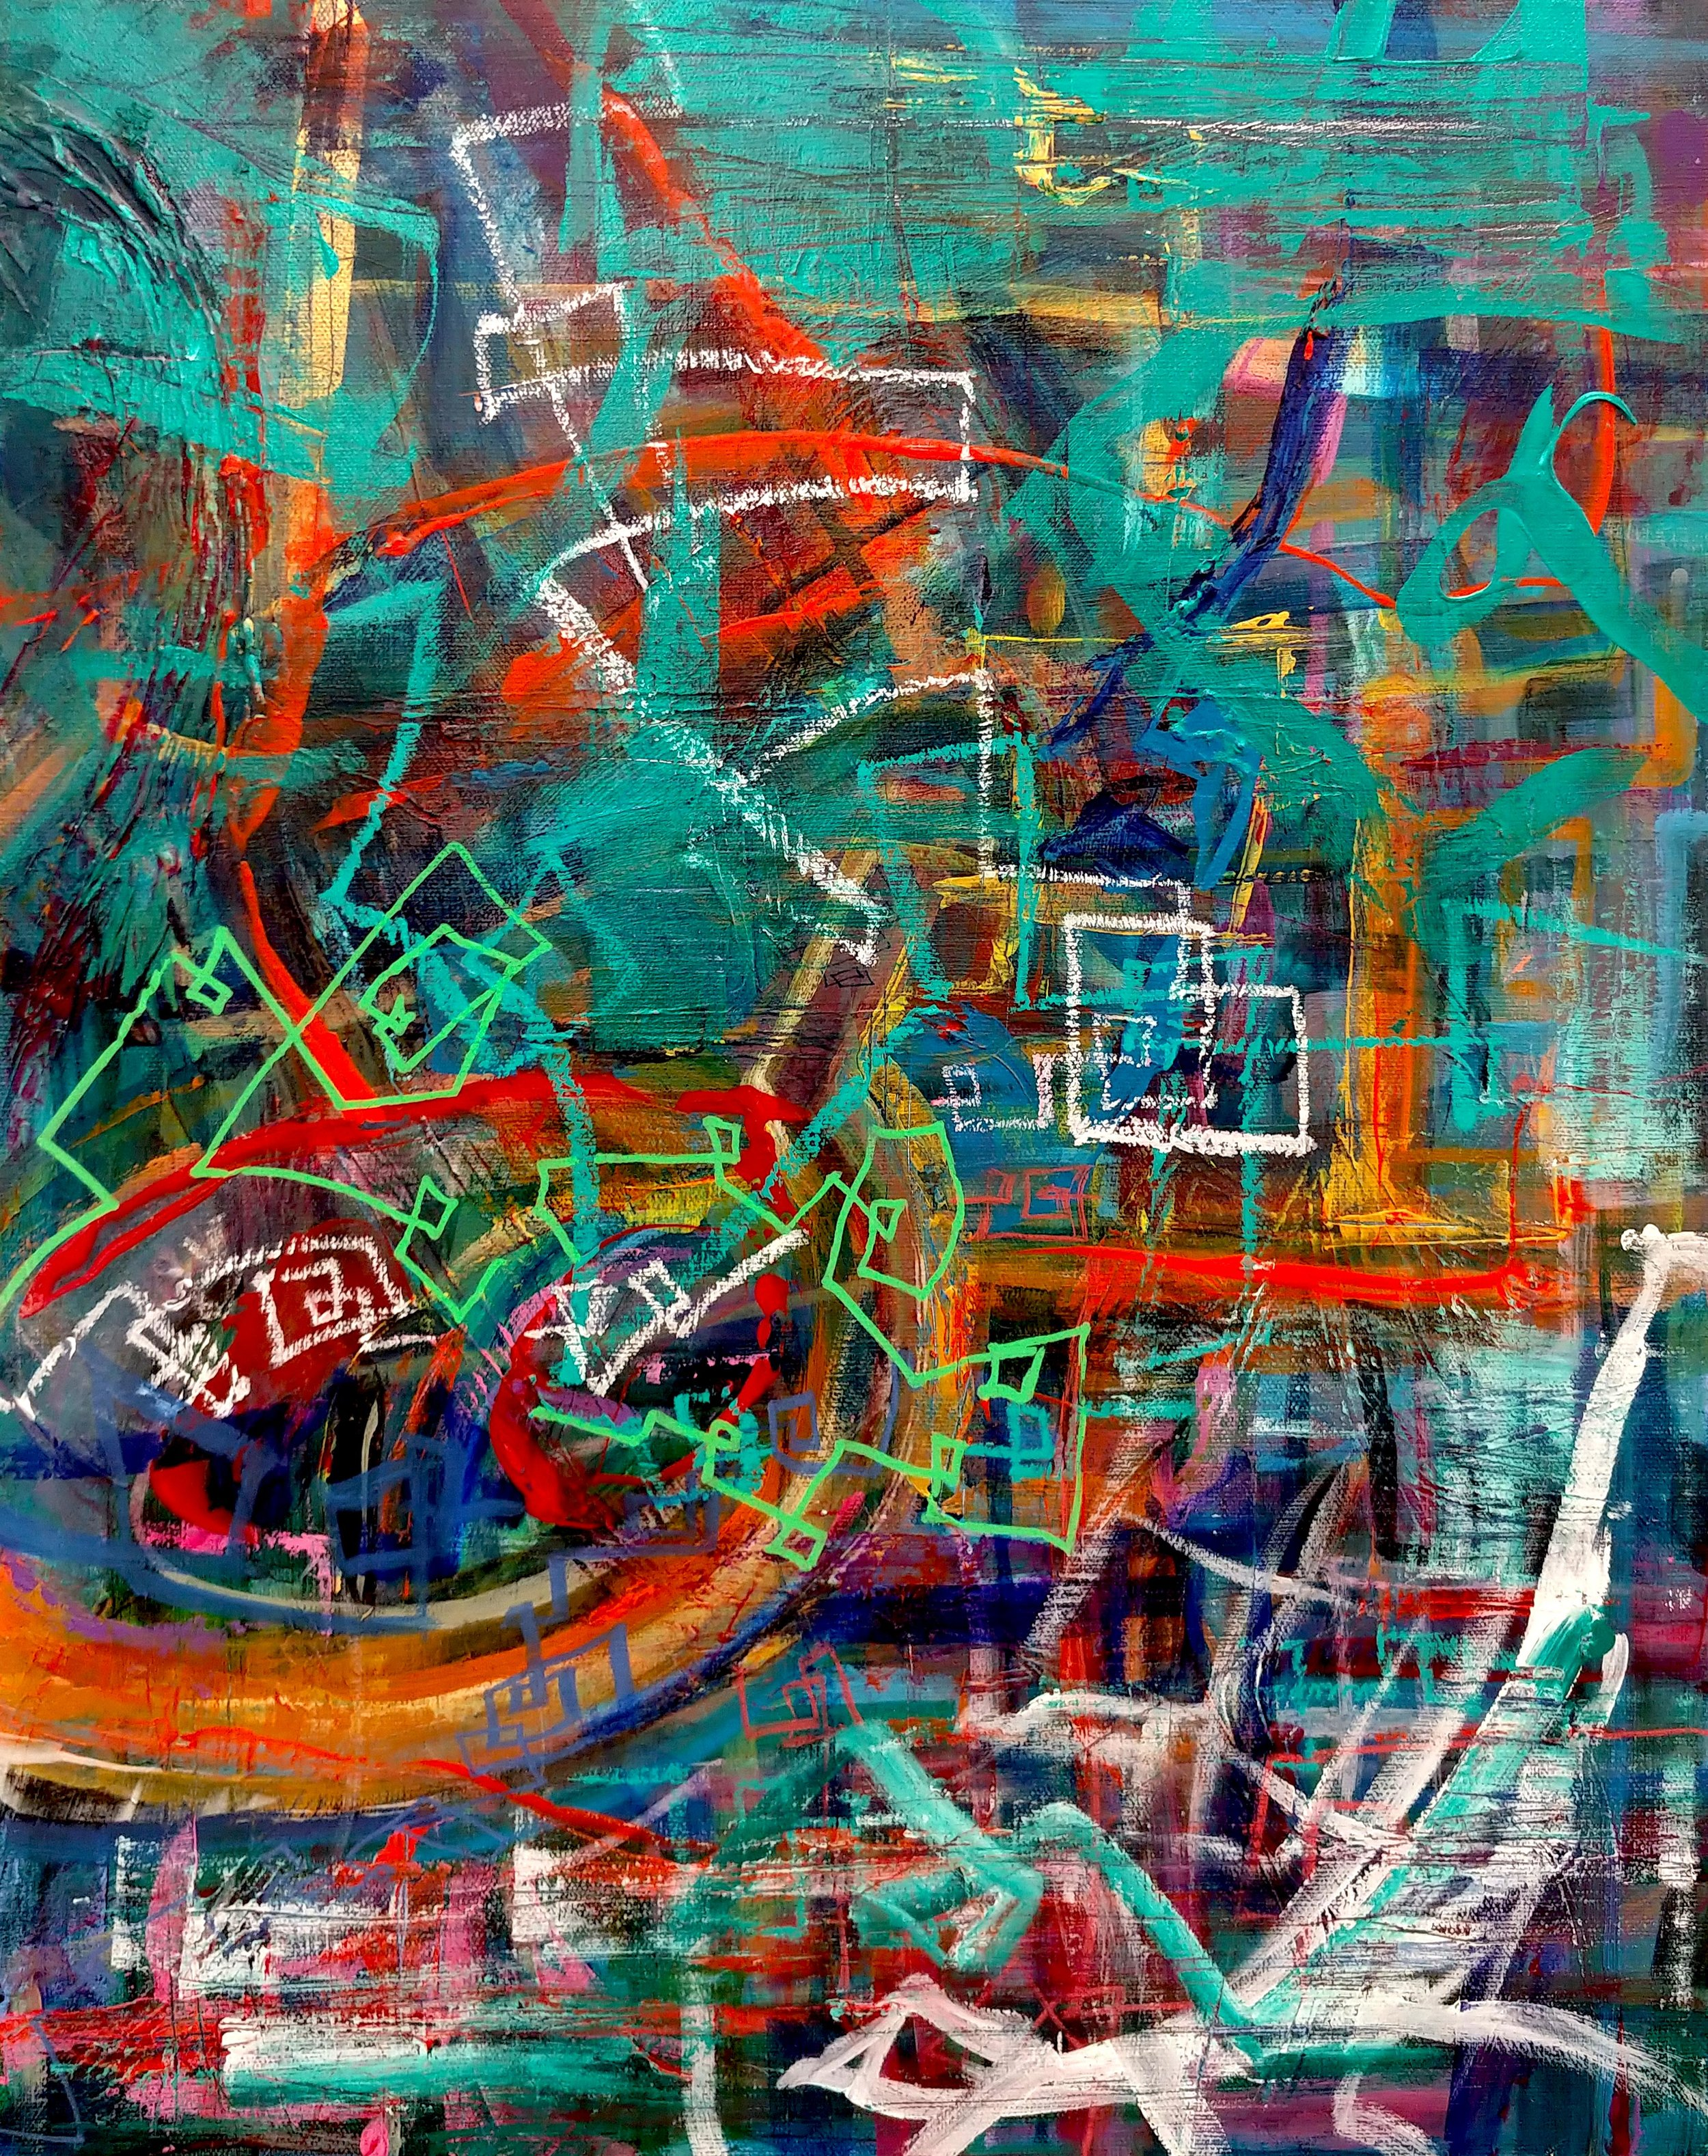 Paths Mixed Media 20in x 16in